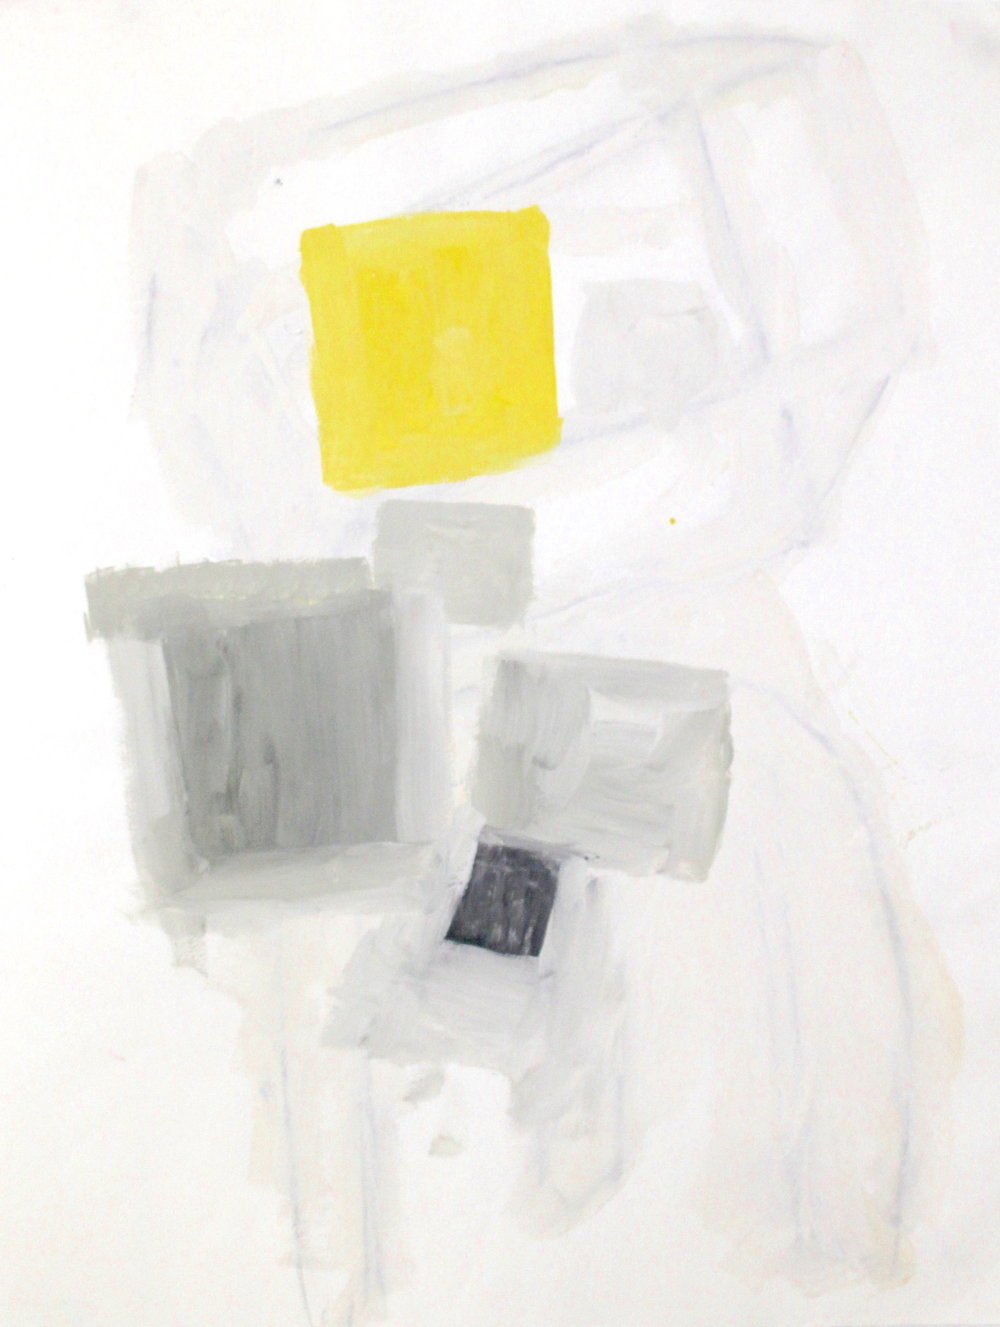 boxhead gray and yellow.JPG